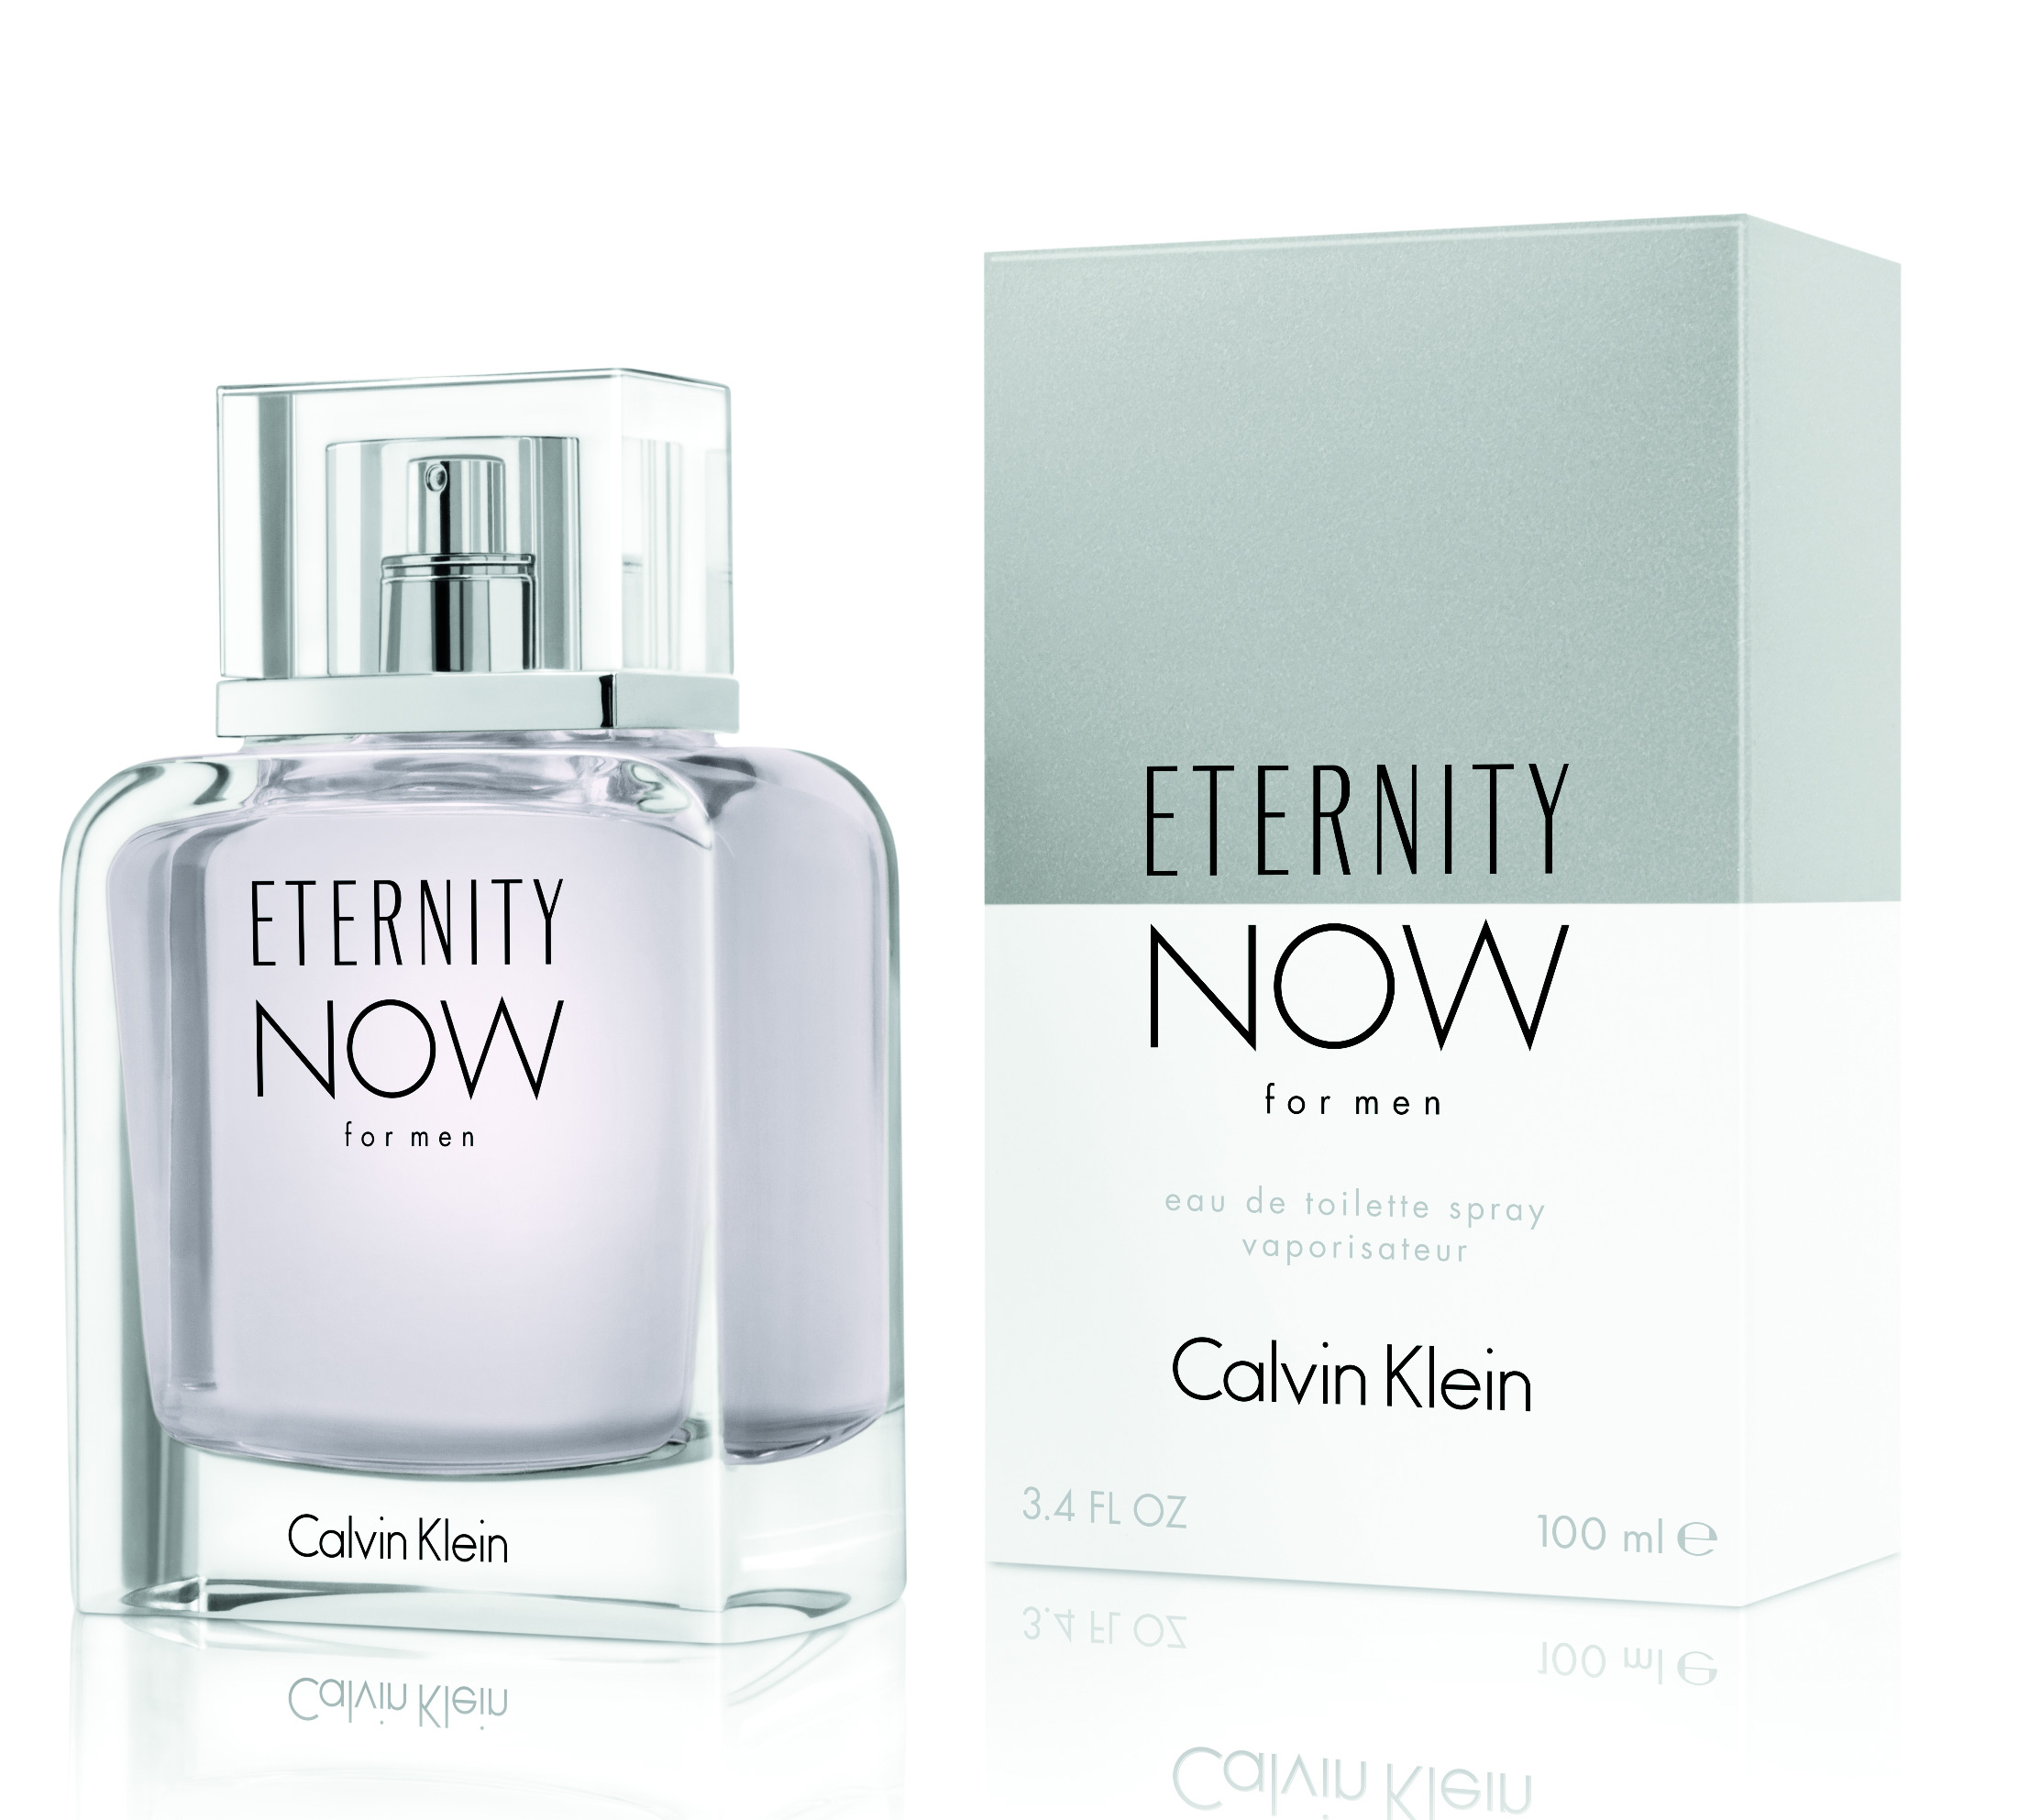 eternity now for men calvin klein cologne a new. Black Bedroom Furniture Sets. Home Design Ideas